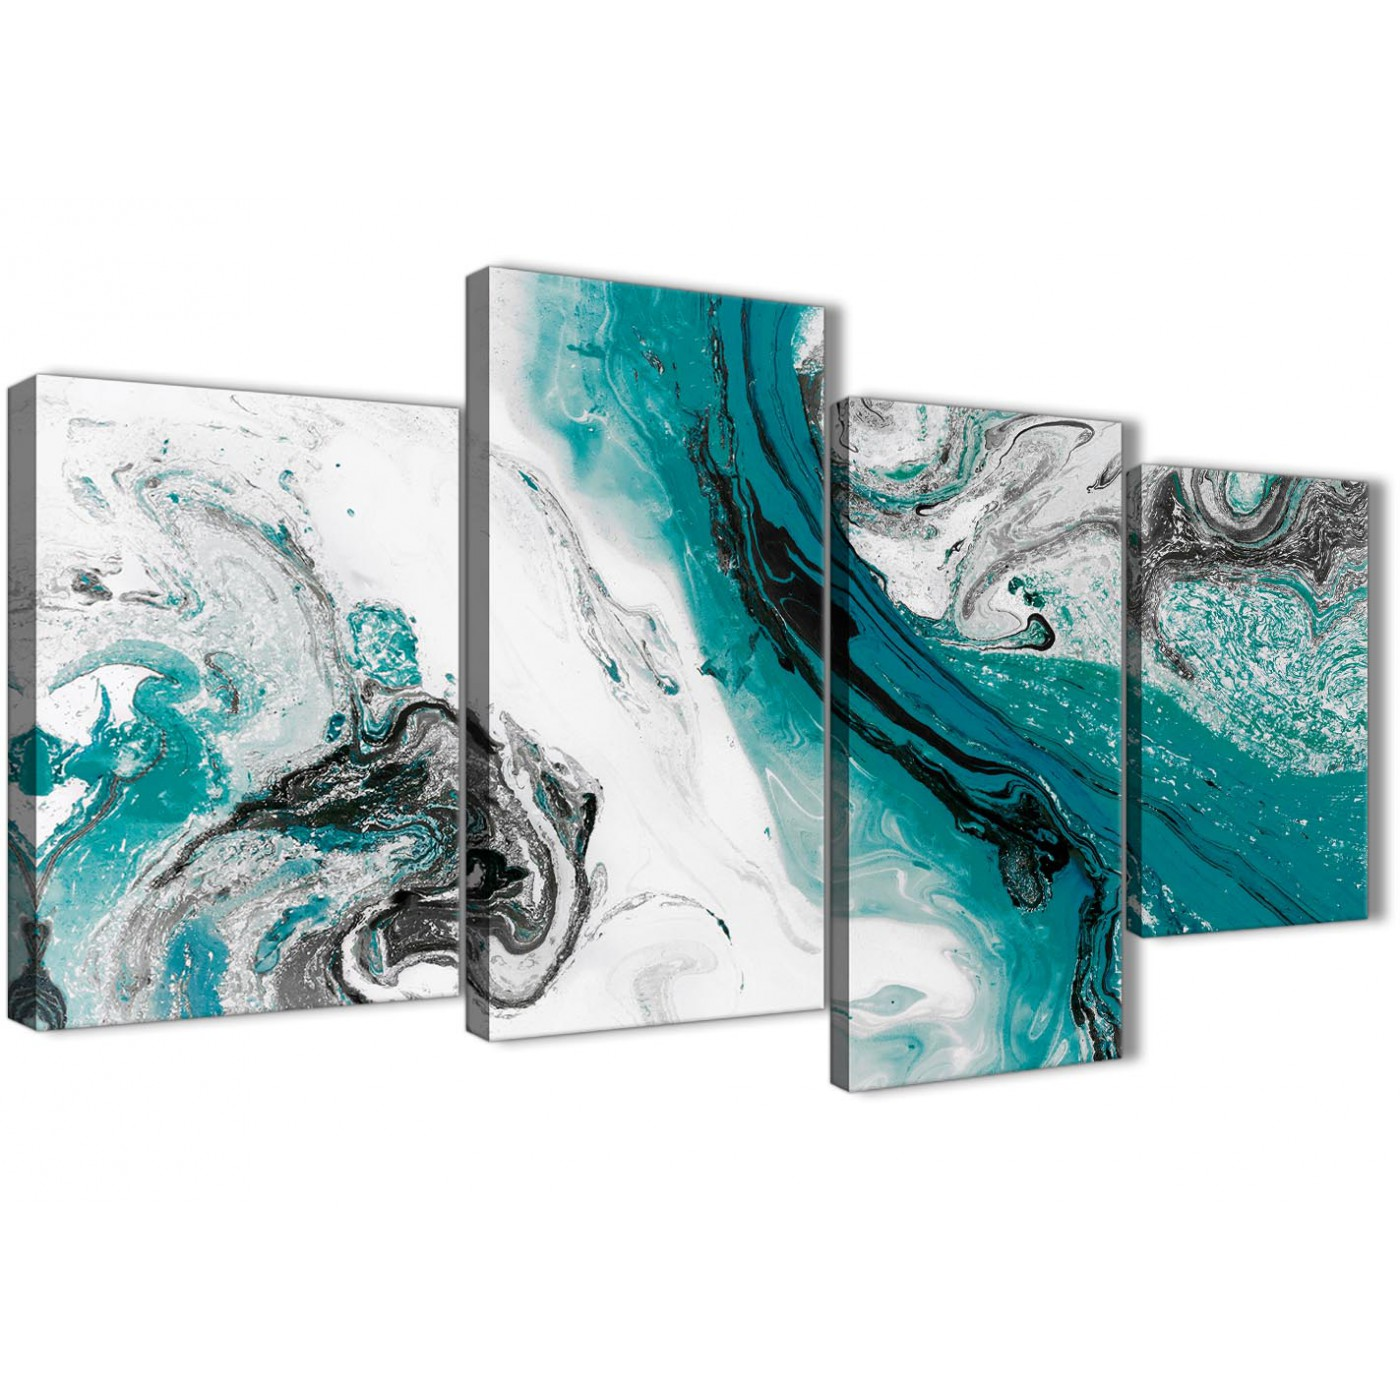 Teal And Grey Swirl Living Room Canvas Wall Art Accessories